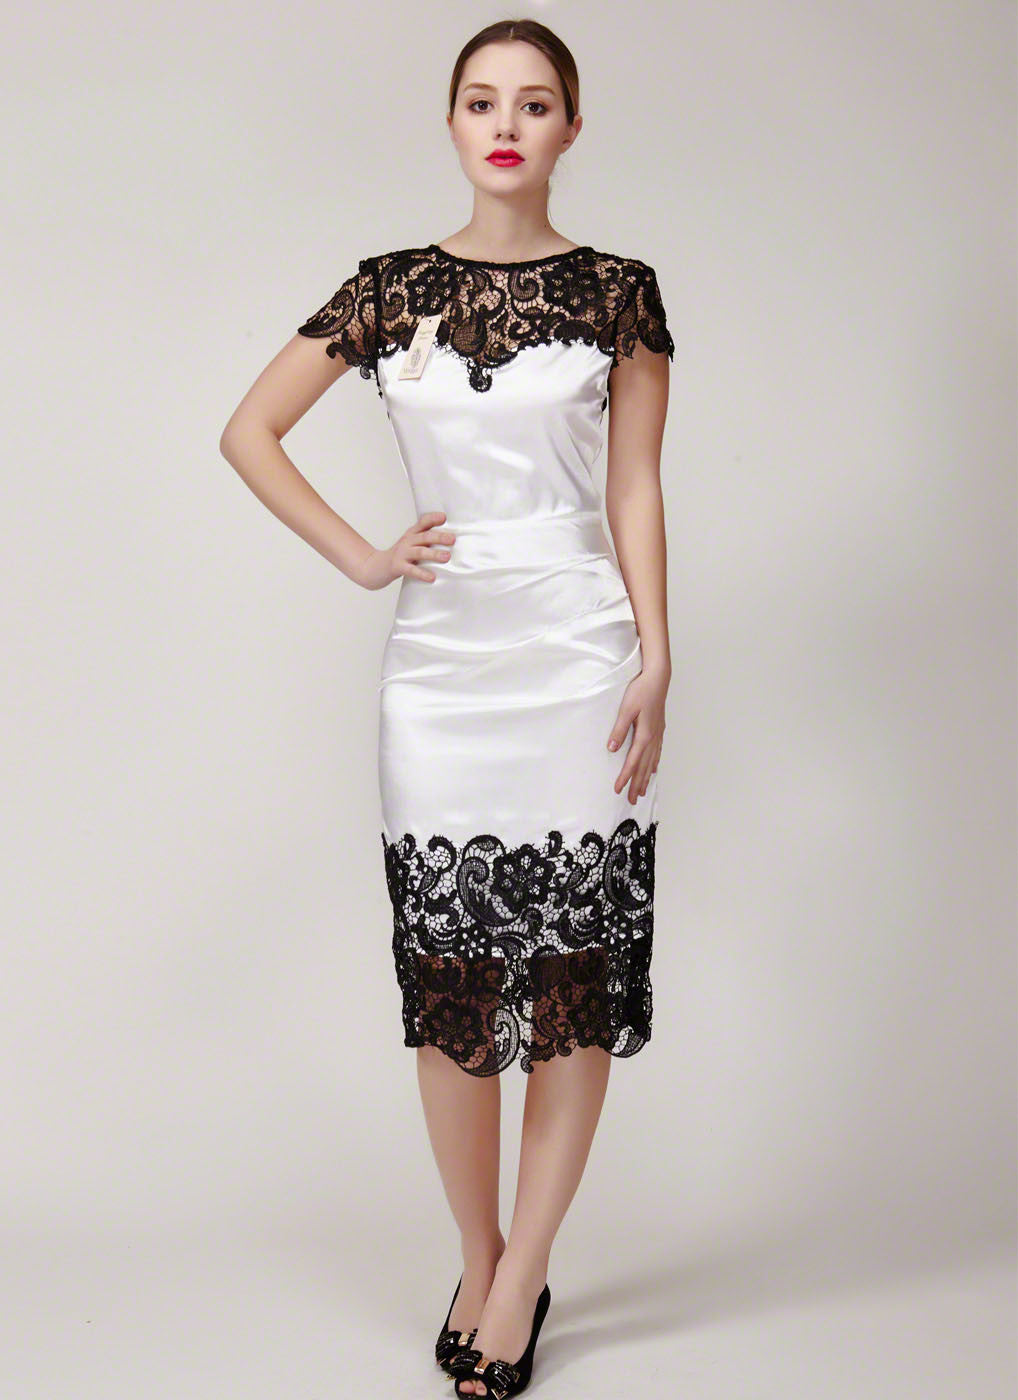 b4bcaf83 Lace Sheath Dress with Cap Sleeve and Asymmetric Hem - Black and White Dress  - V